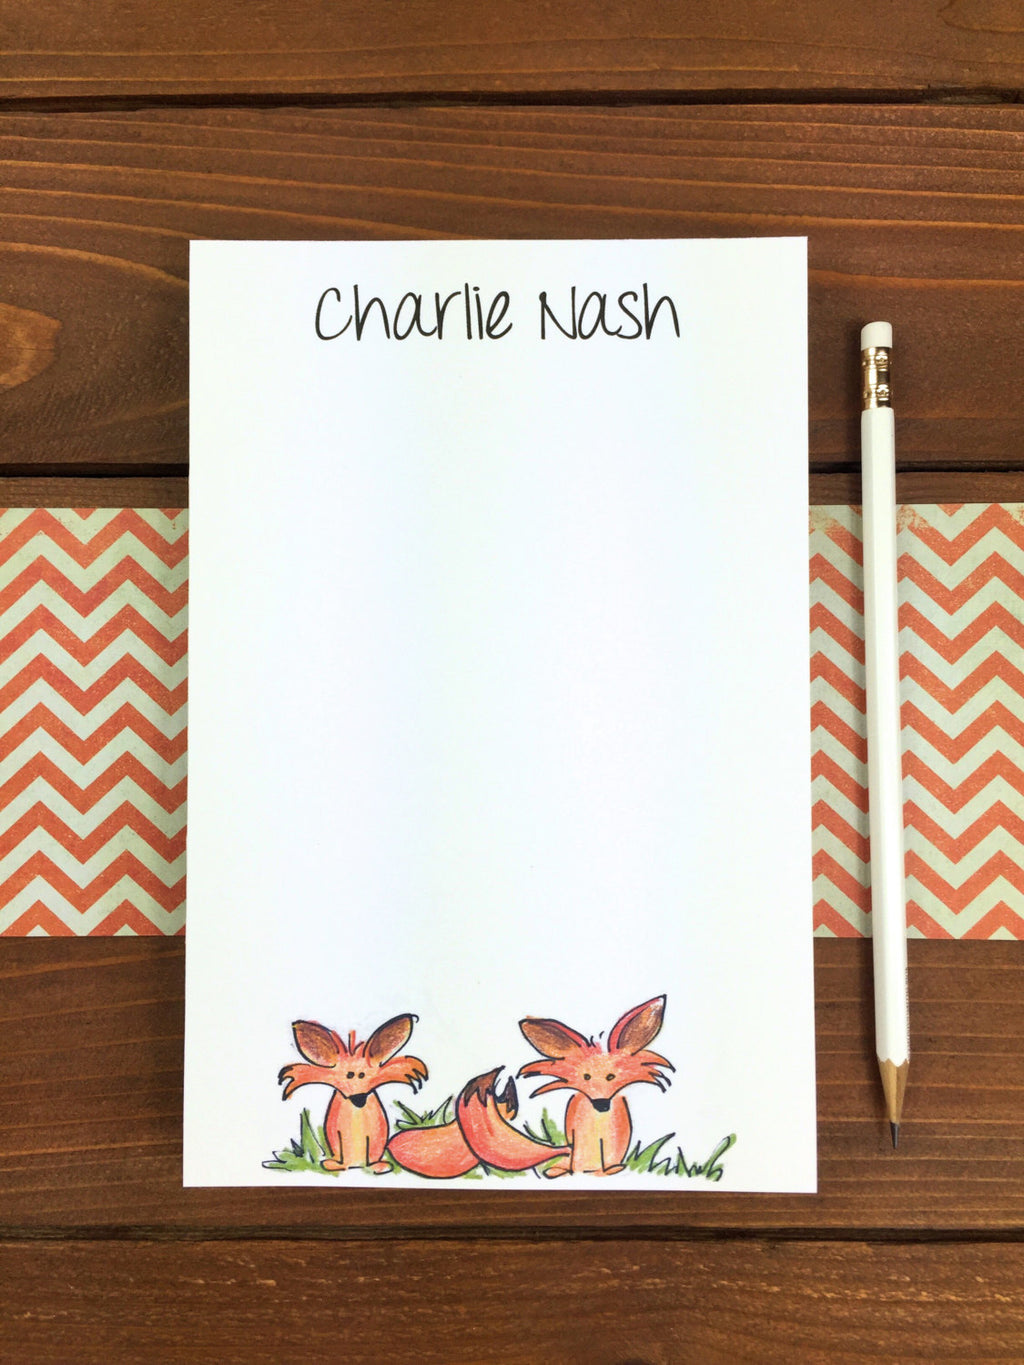 Fox Notepad, Personalized Fox Notepad, Fox Stationery, Cute Fox Gift, Woodland Creatures, Woodland Party Favors, Fox Note Pad - 5.5 x 8.5